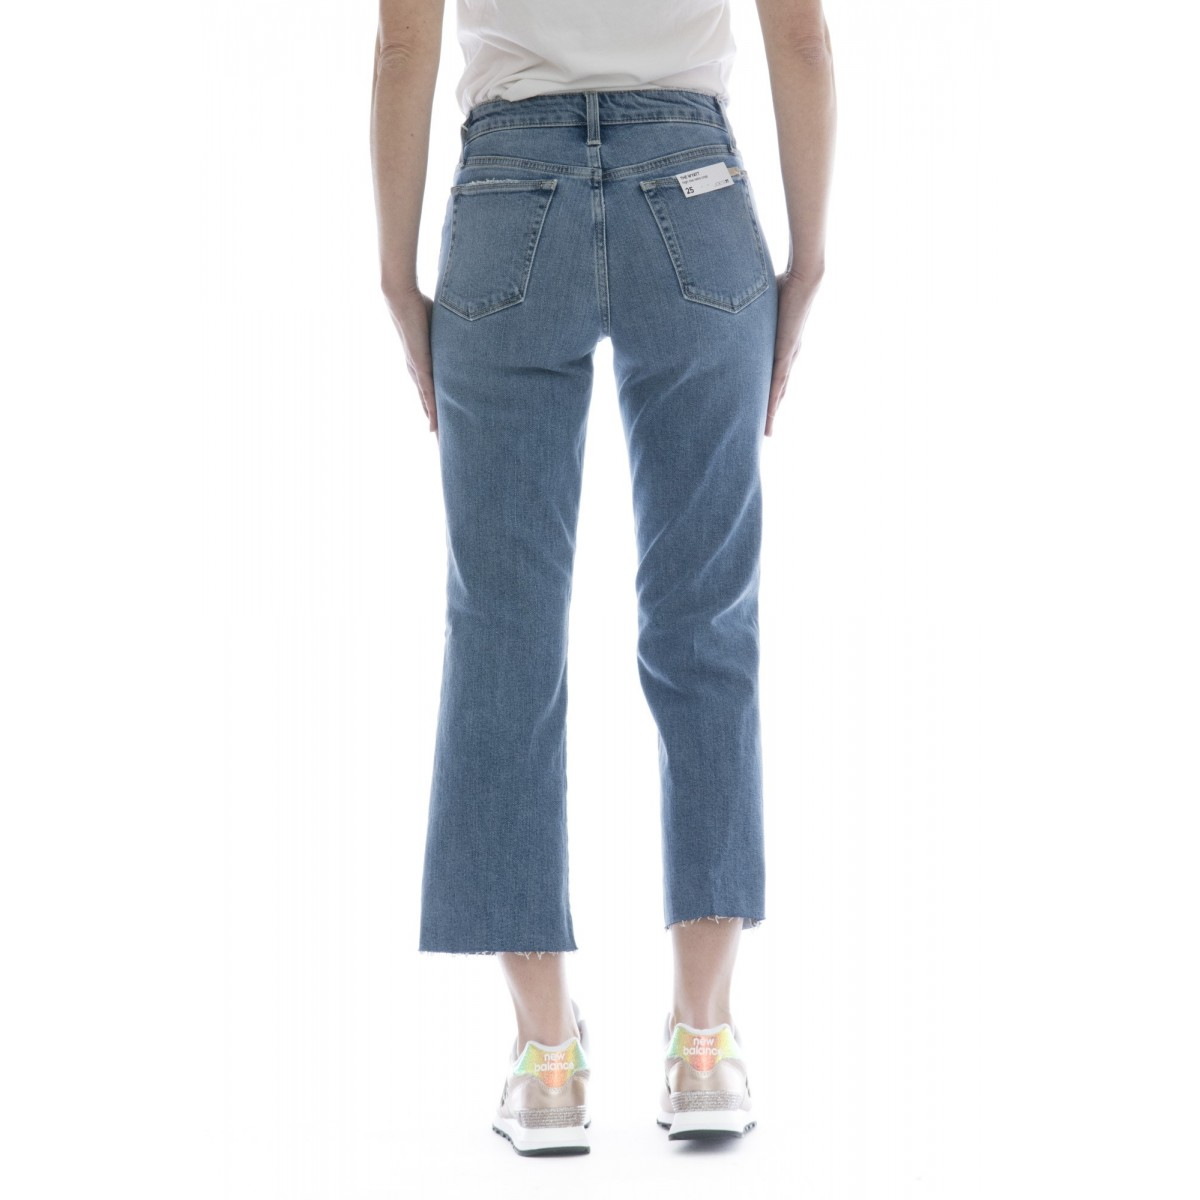 Jeans - The wyatt 5815 gamba dritta larga